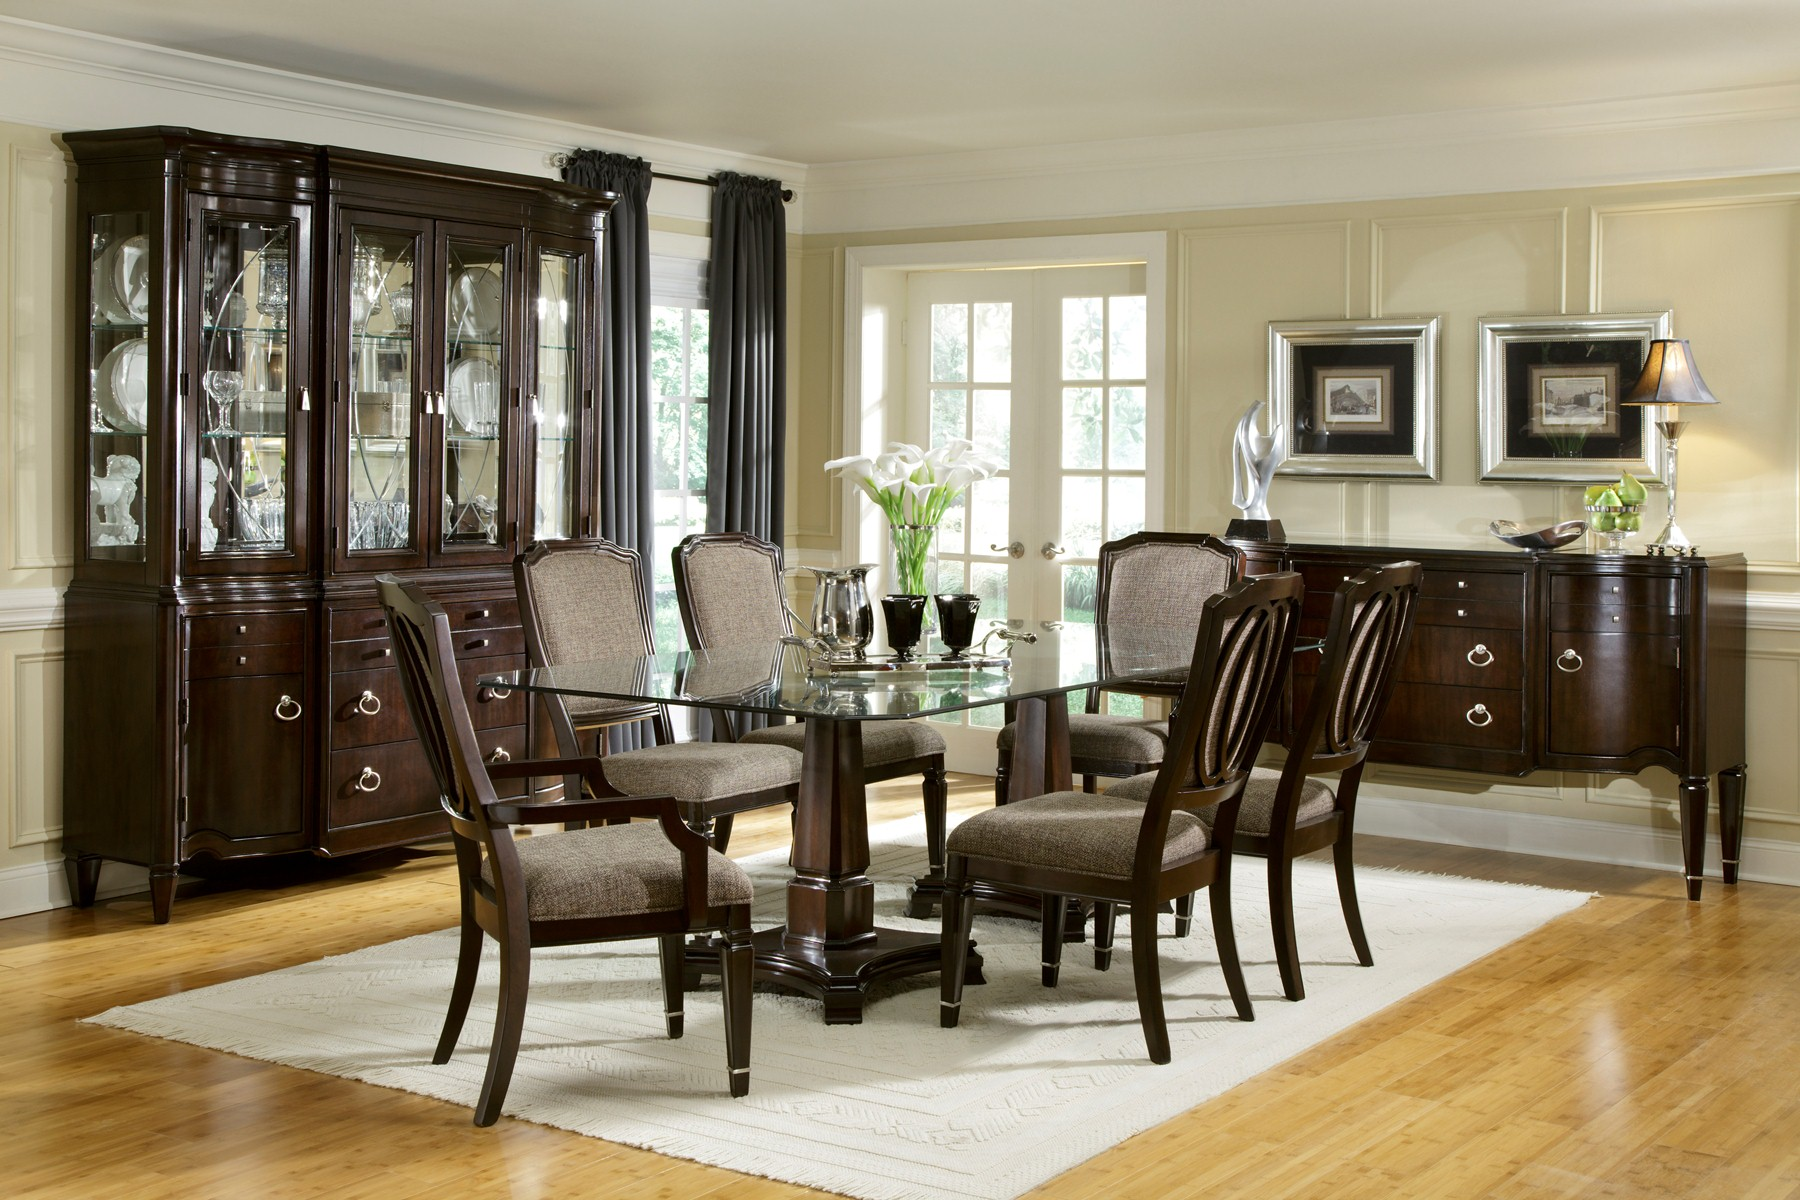 furniture dining room furniture glass collection